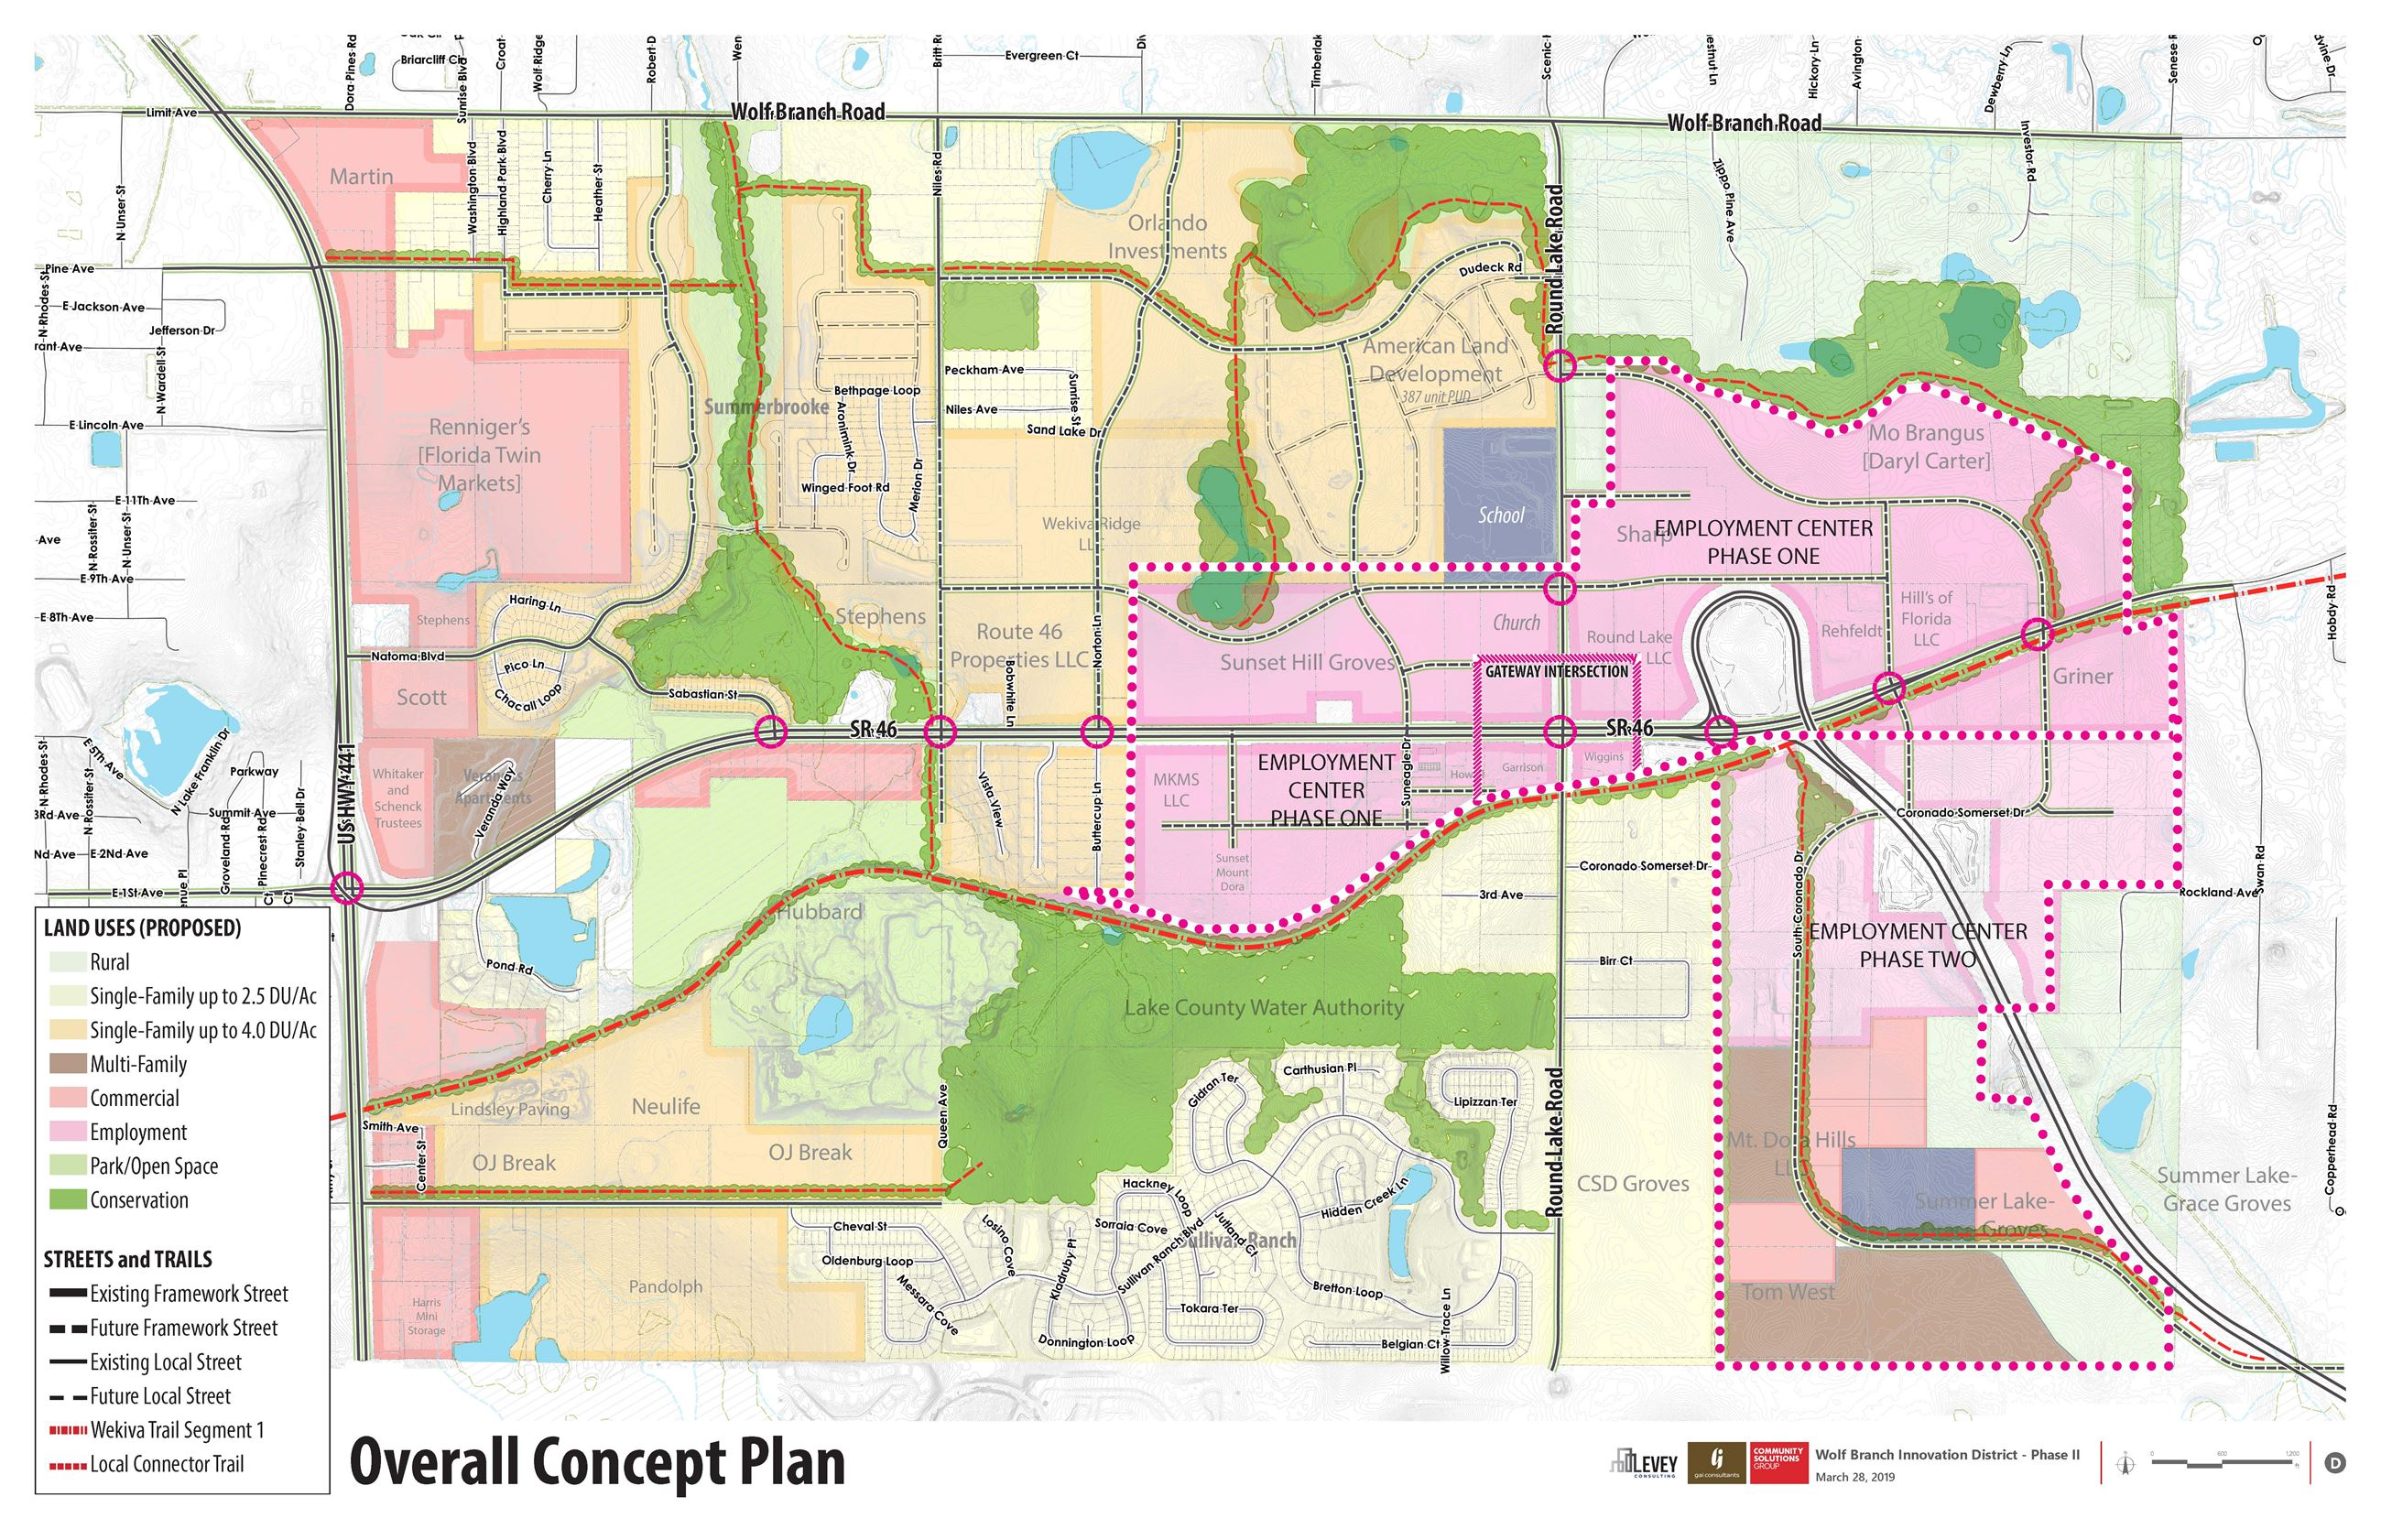 Wolf Branch Innovation District Overall Concept Plan